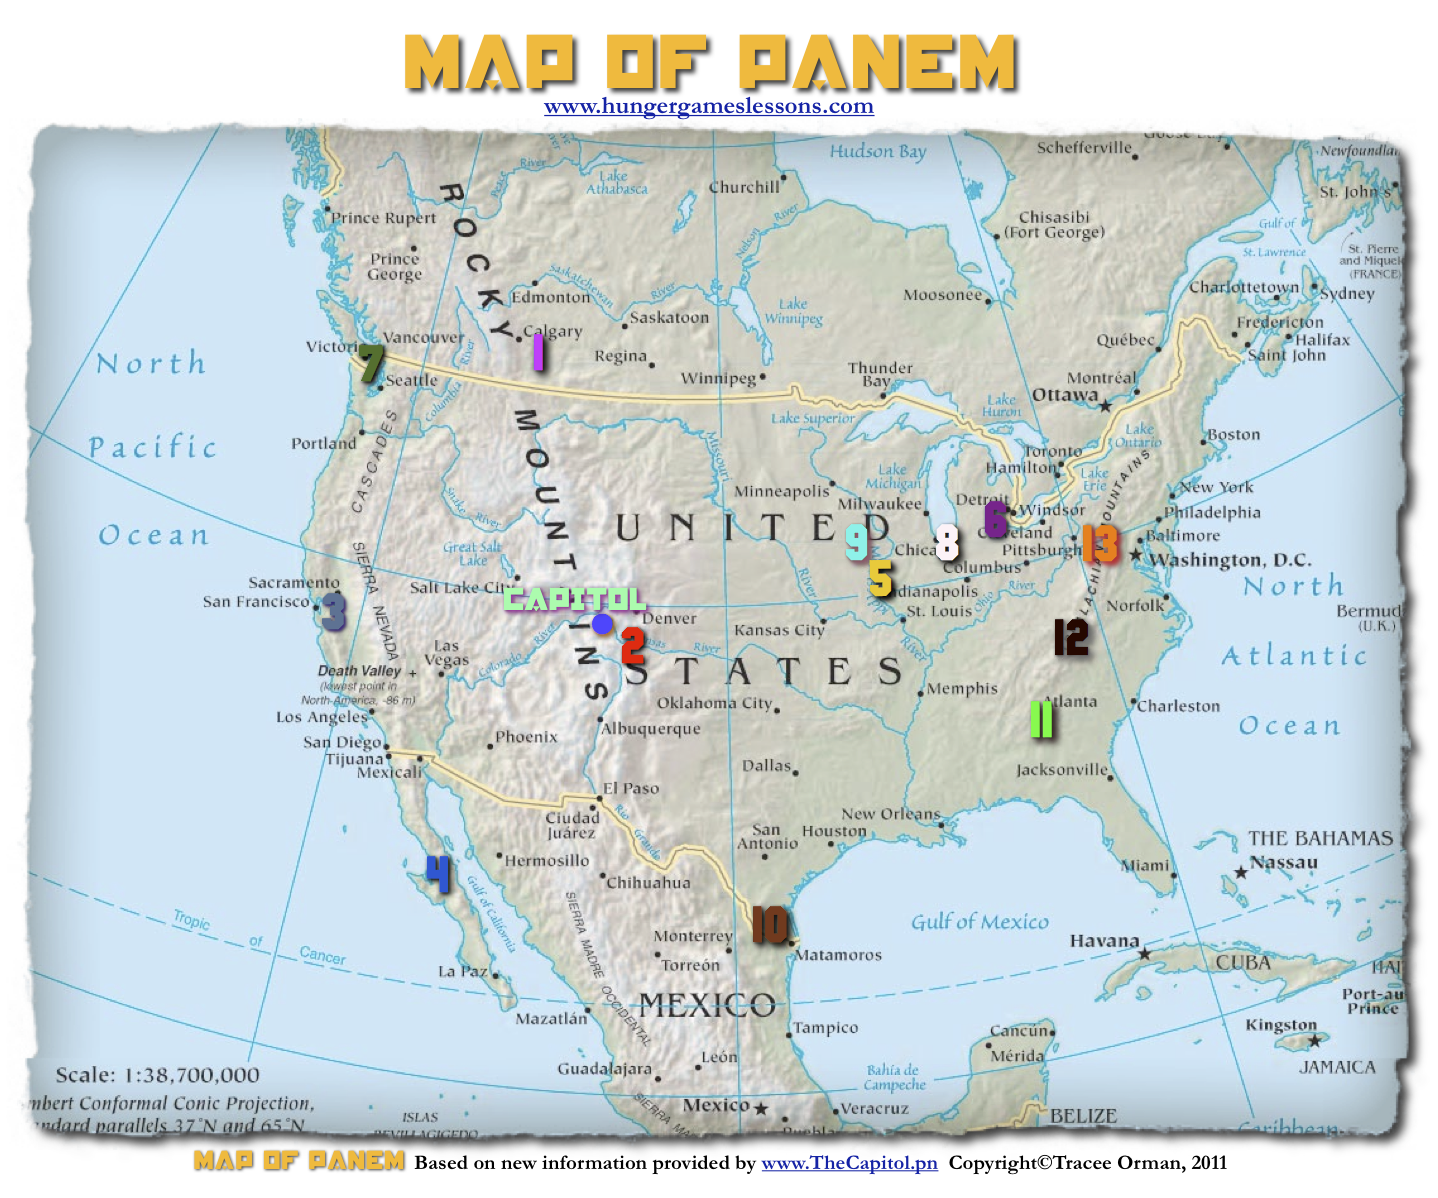 all of the districts in hunger games